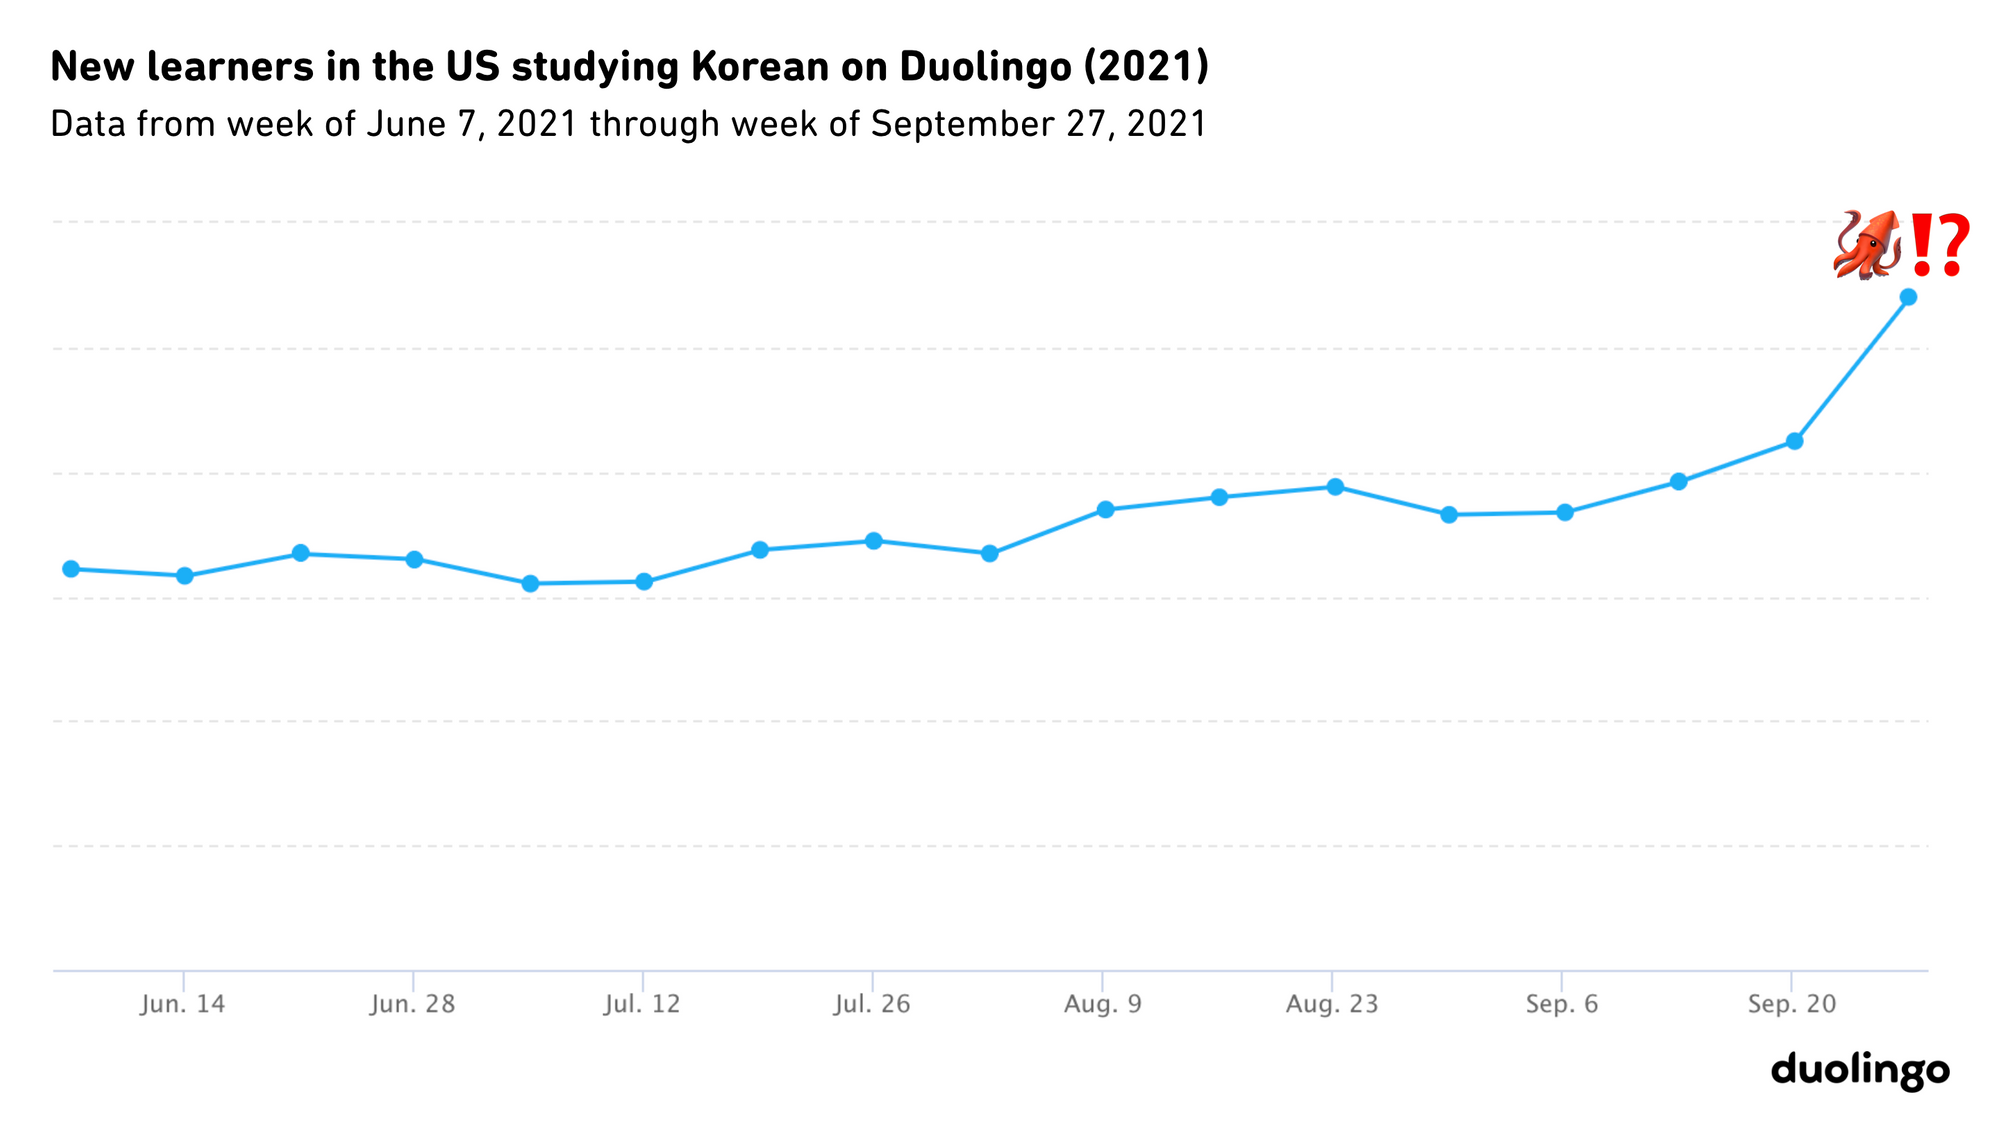 Graph of new US learners studying Korean on Duolingo in 2021